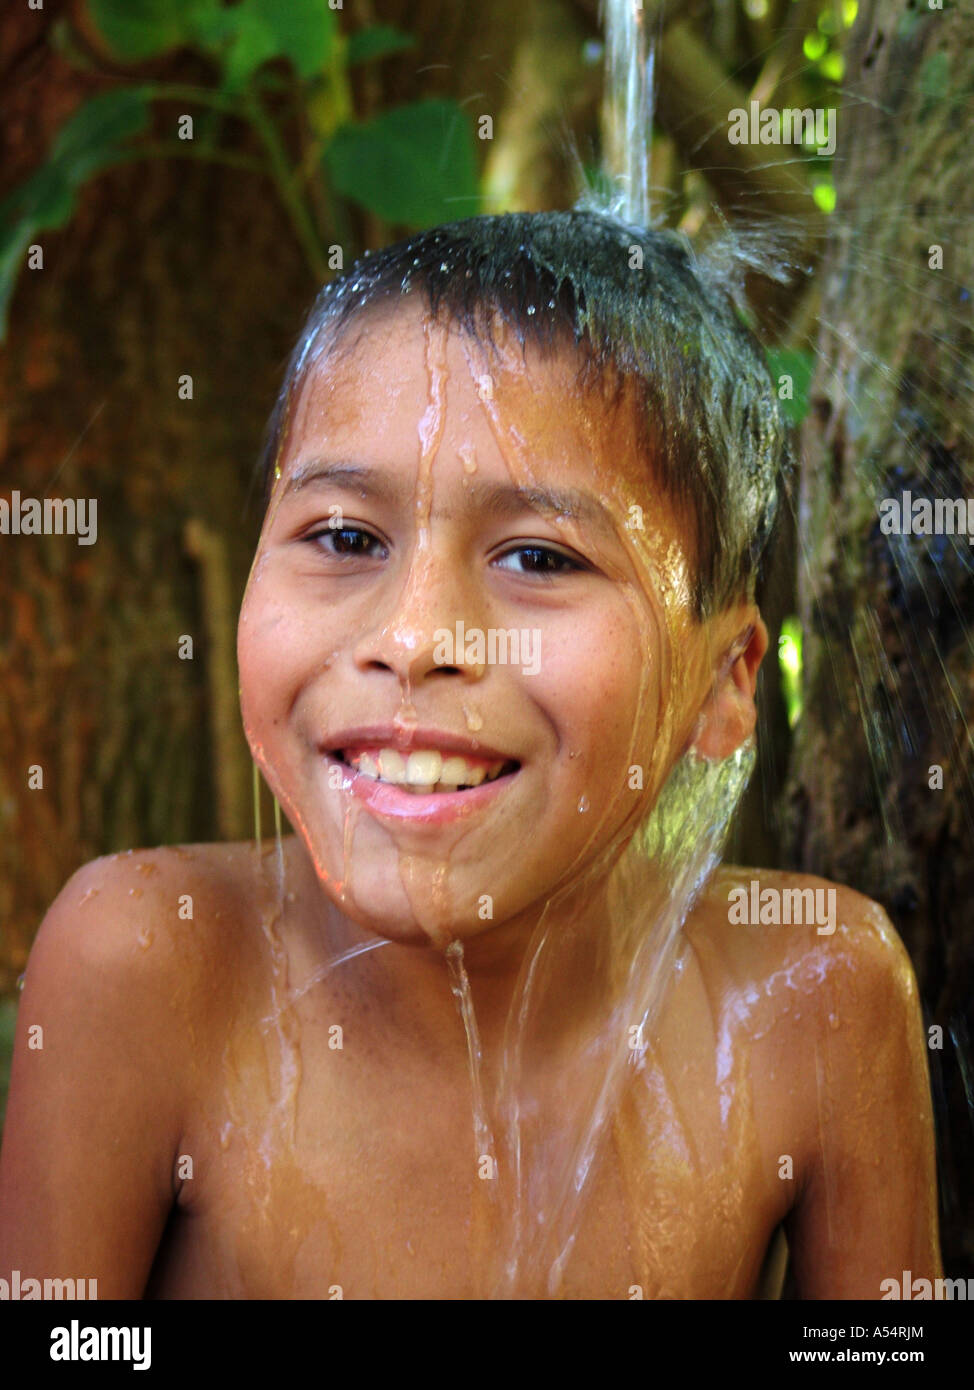 Painet ip1889 honduras boy taking bath agua caliente copan country developing nation less economically developed - Stock Image